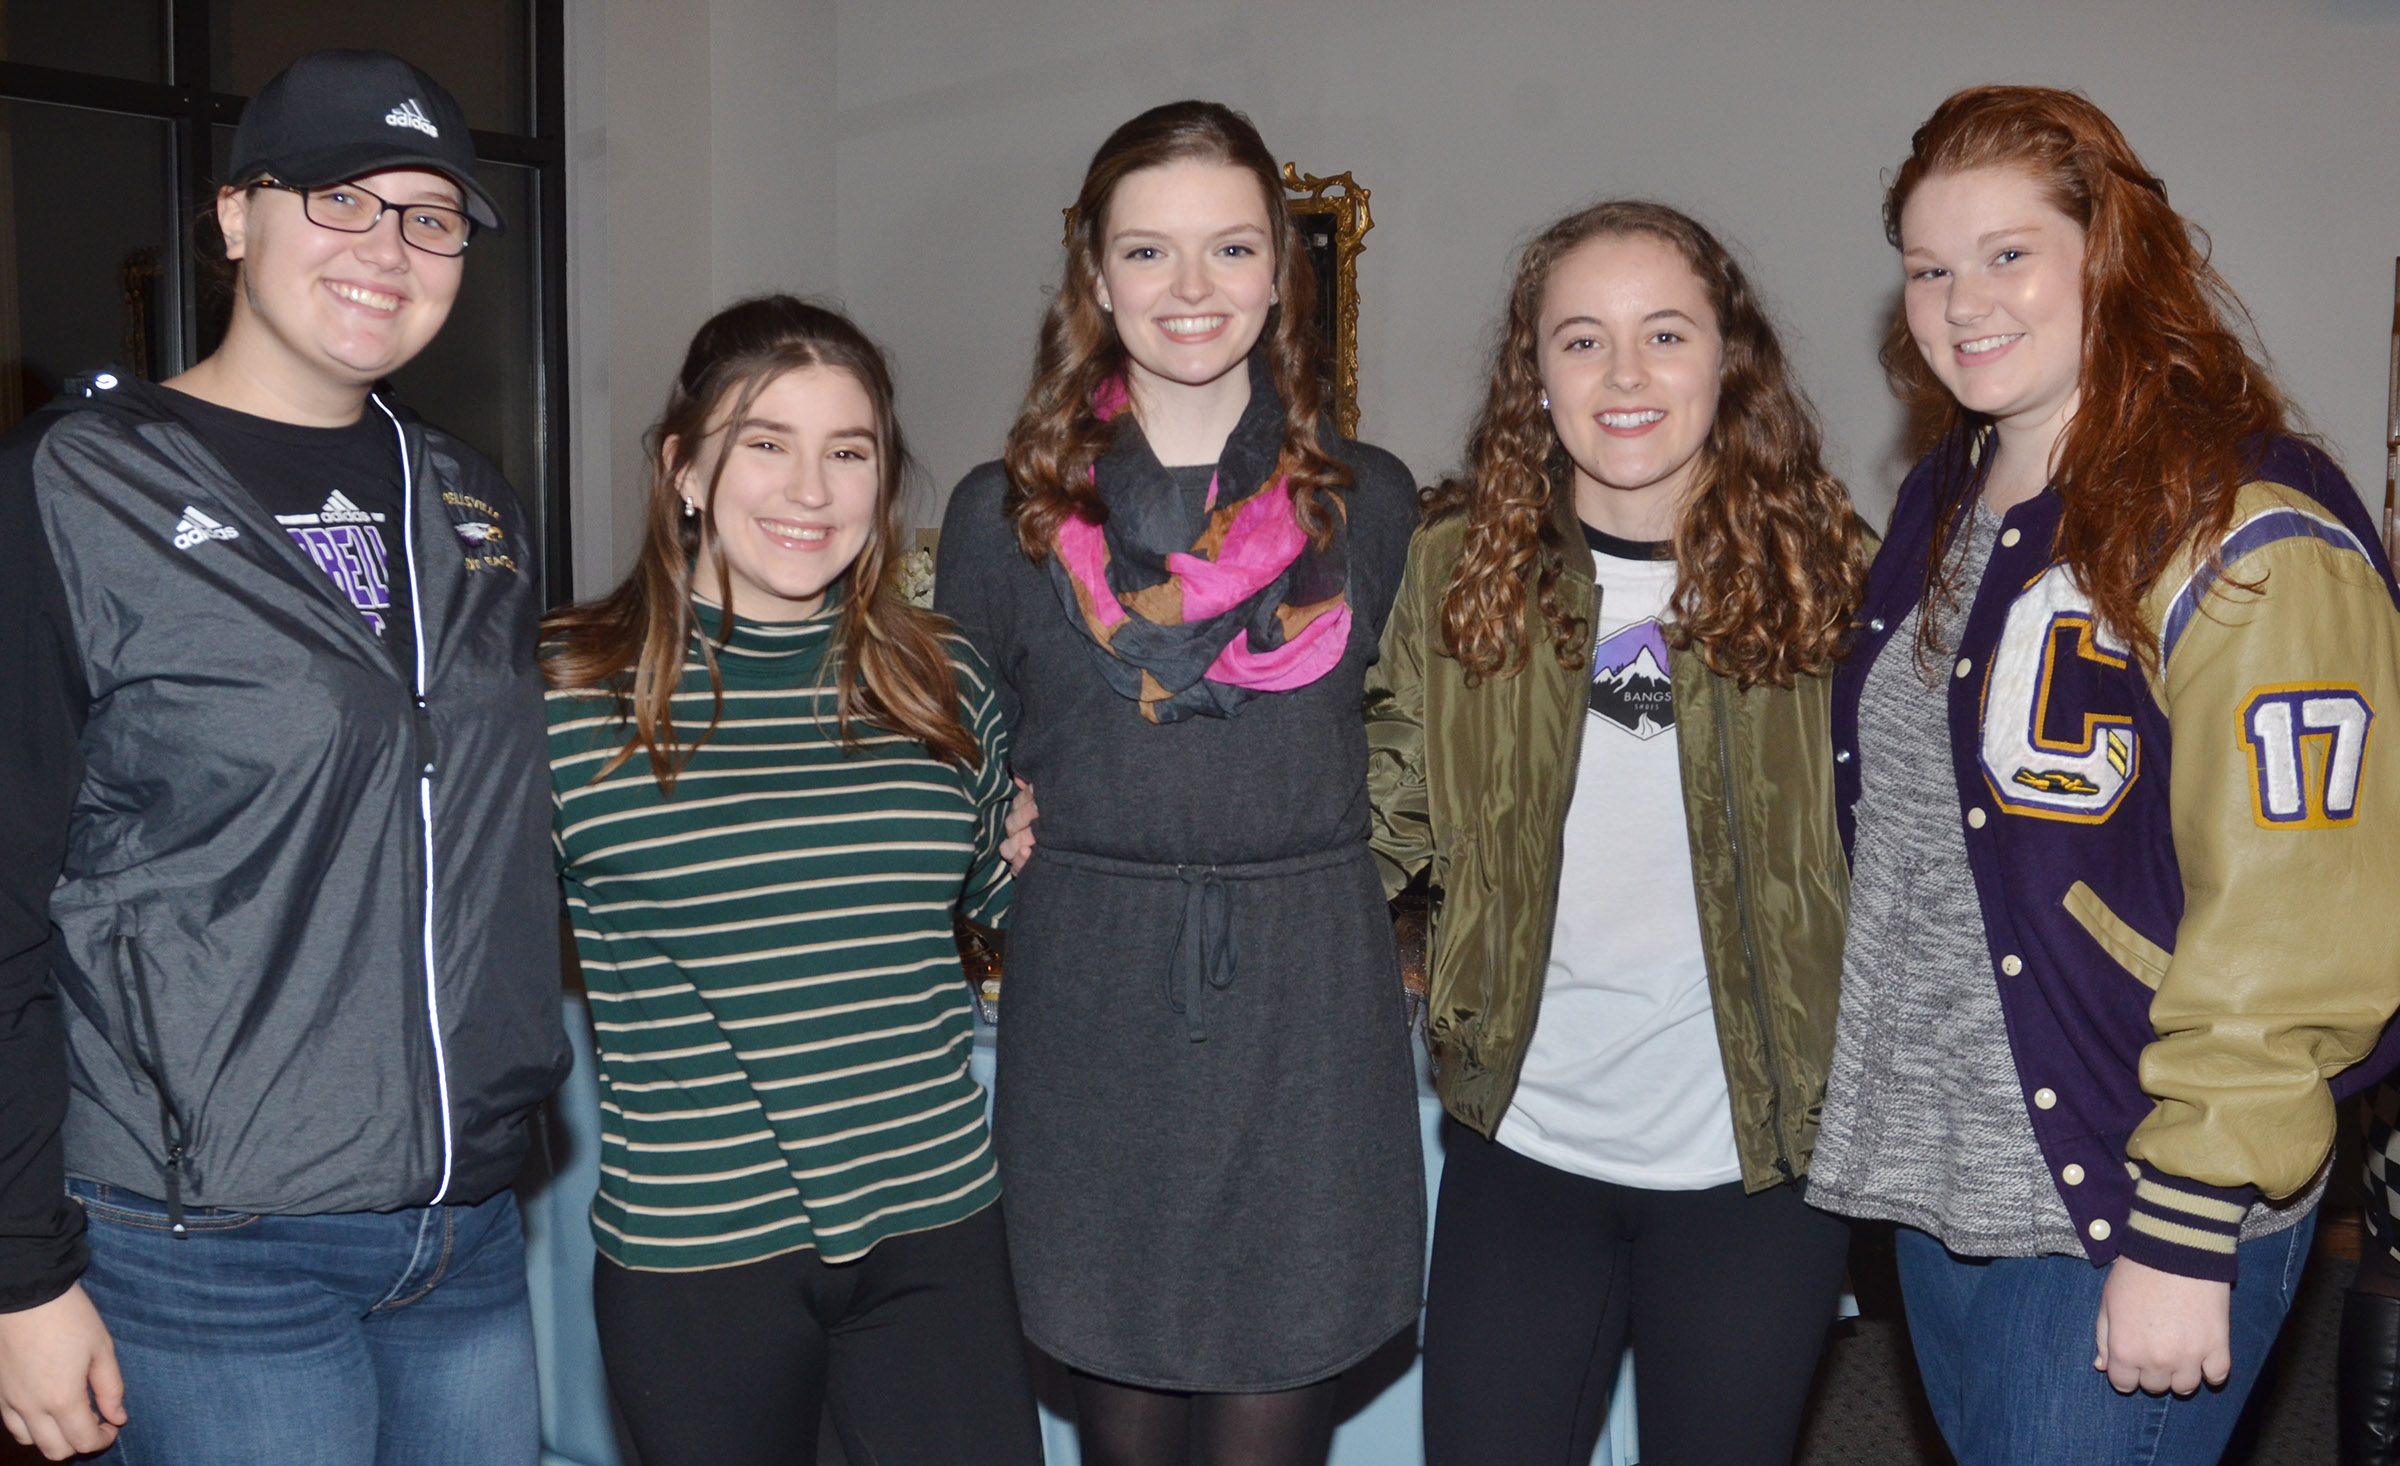 CHS senior Blair Lamb was honored at a reception on Friday, Jan. 6, before she left to compete in the Kentucky Distinguished Young Women competition. Lamb, center, is pictured with some of her friends.